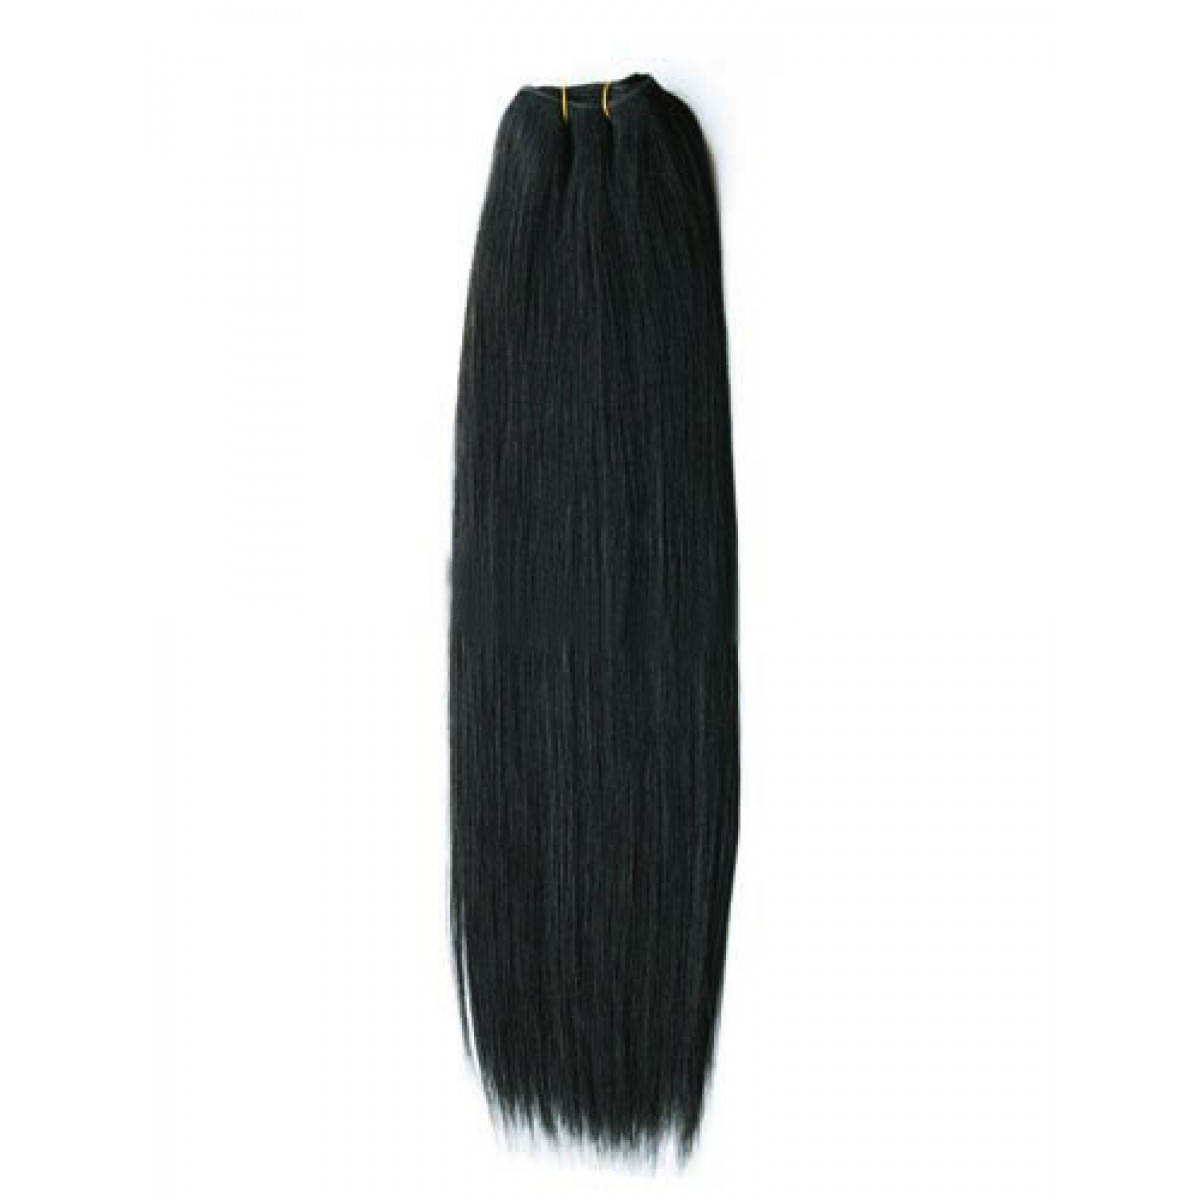 14 Inch #1 Jet Black Straight Indian Remy Hair Wefts no 1